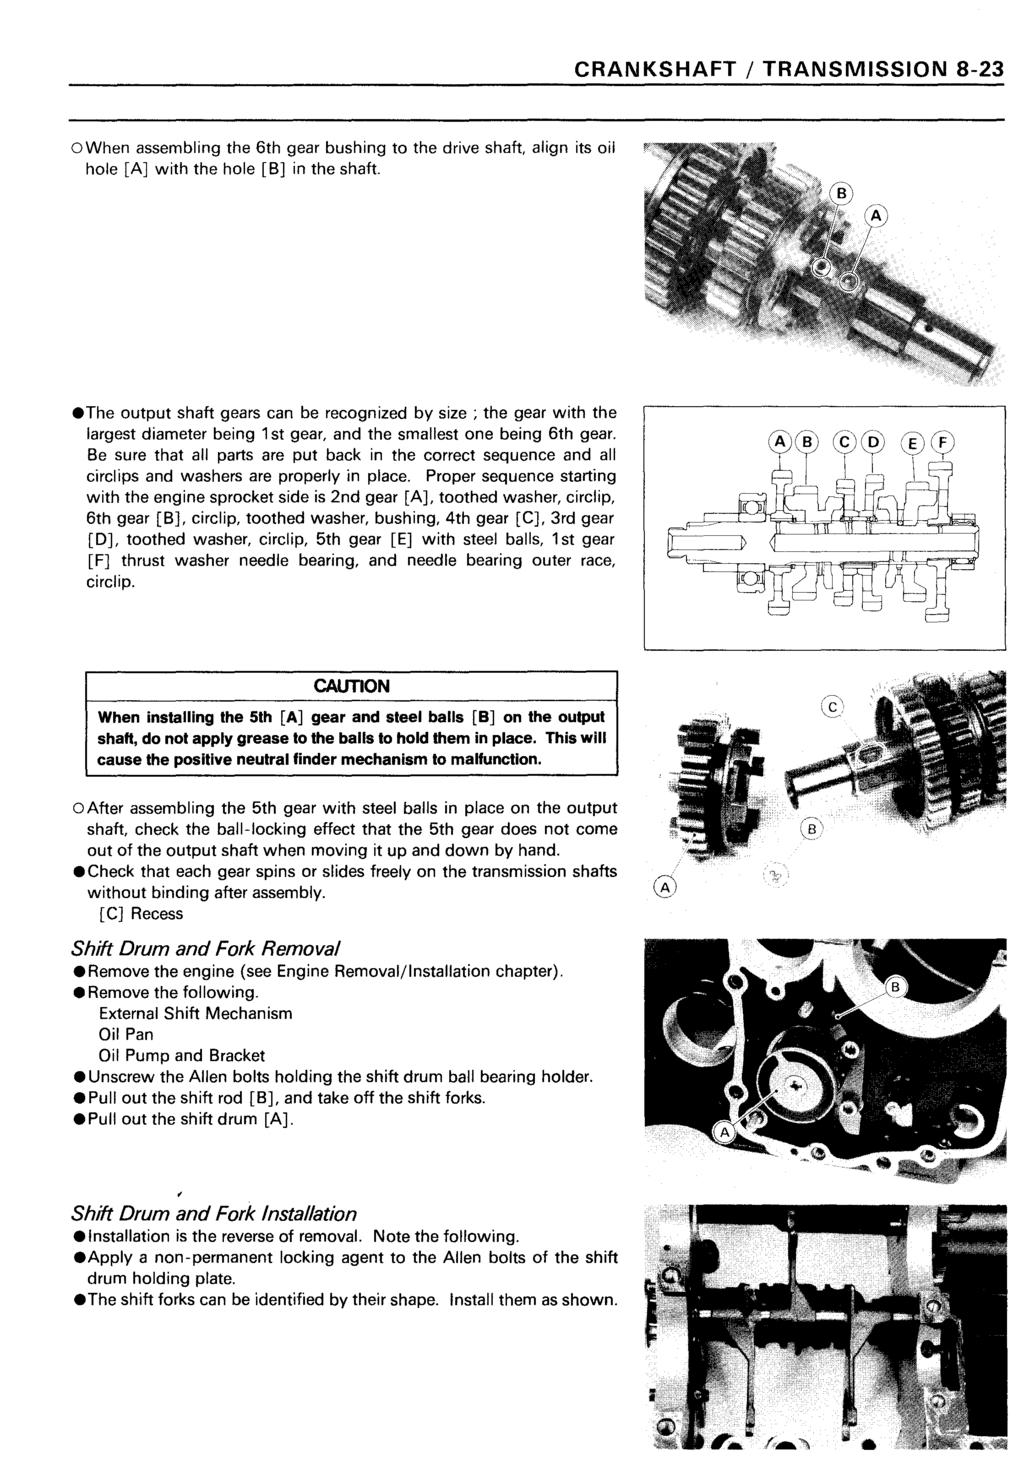 Ninja Zx 11 Zz R1100 Kawasaki Motorcycle Service Manual Pdf Zx11 Wiring Diagram Crankshaft Transmission 8 23 Owhen Assembling The 6th Gear Bushing To Drive Shaft